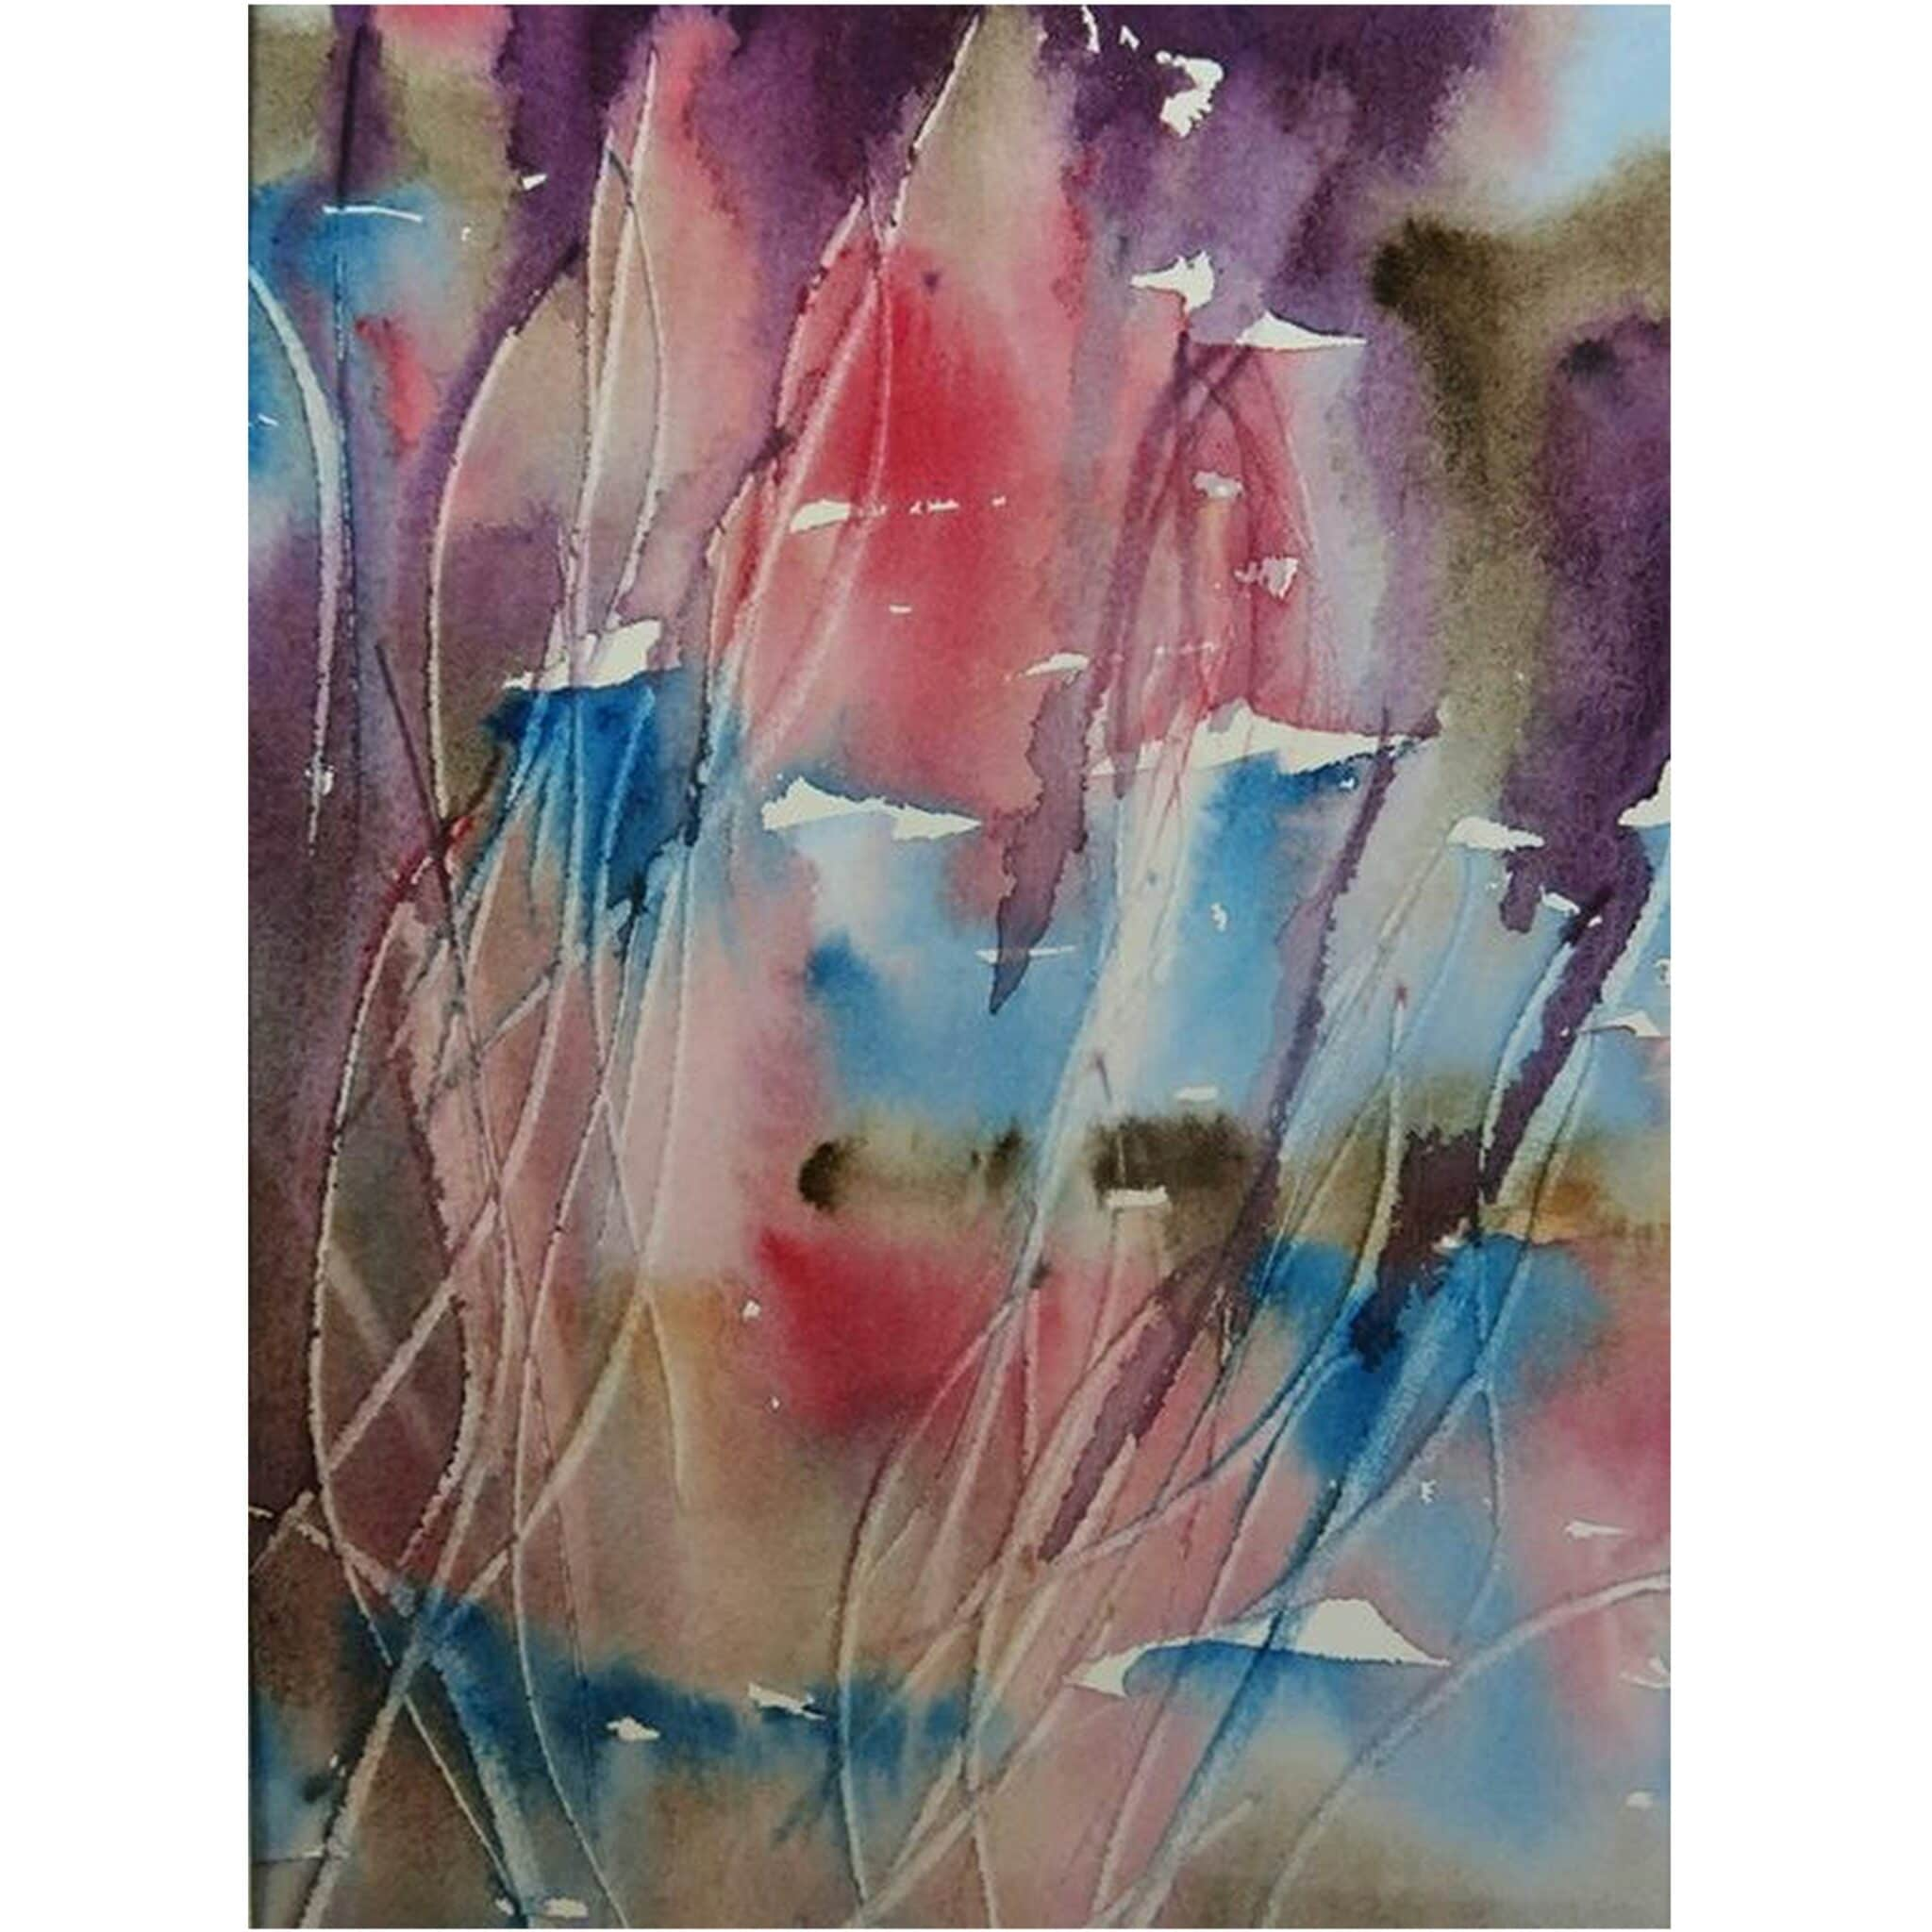 Blowing In The Breeze. An Abstract Watercolour Original Painting Of Flowers By Local Artist Carin Lavery